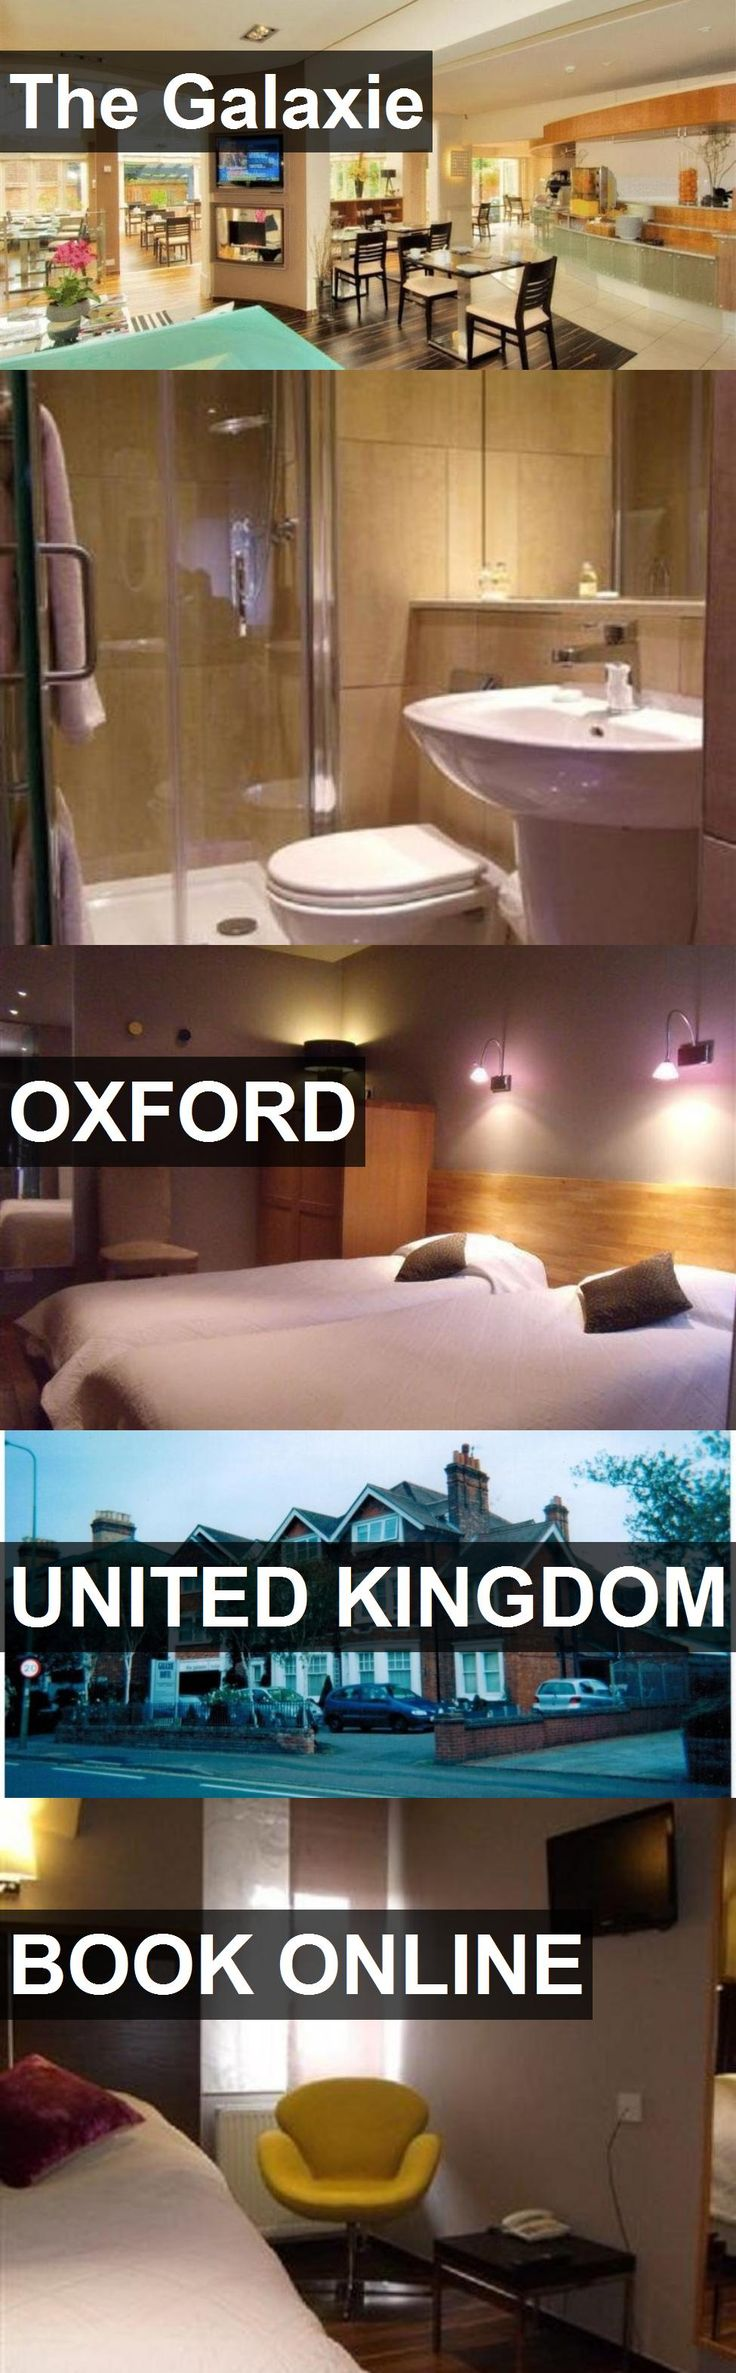 Hotel The Galaxie in Oxford, United Kingdom. For more information, photos, reviews and best prices please follow the link. #UnitedKingdom #Oxford #TheGalaxie #hotel #travel #vacation